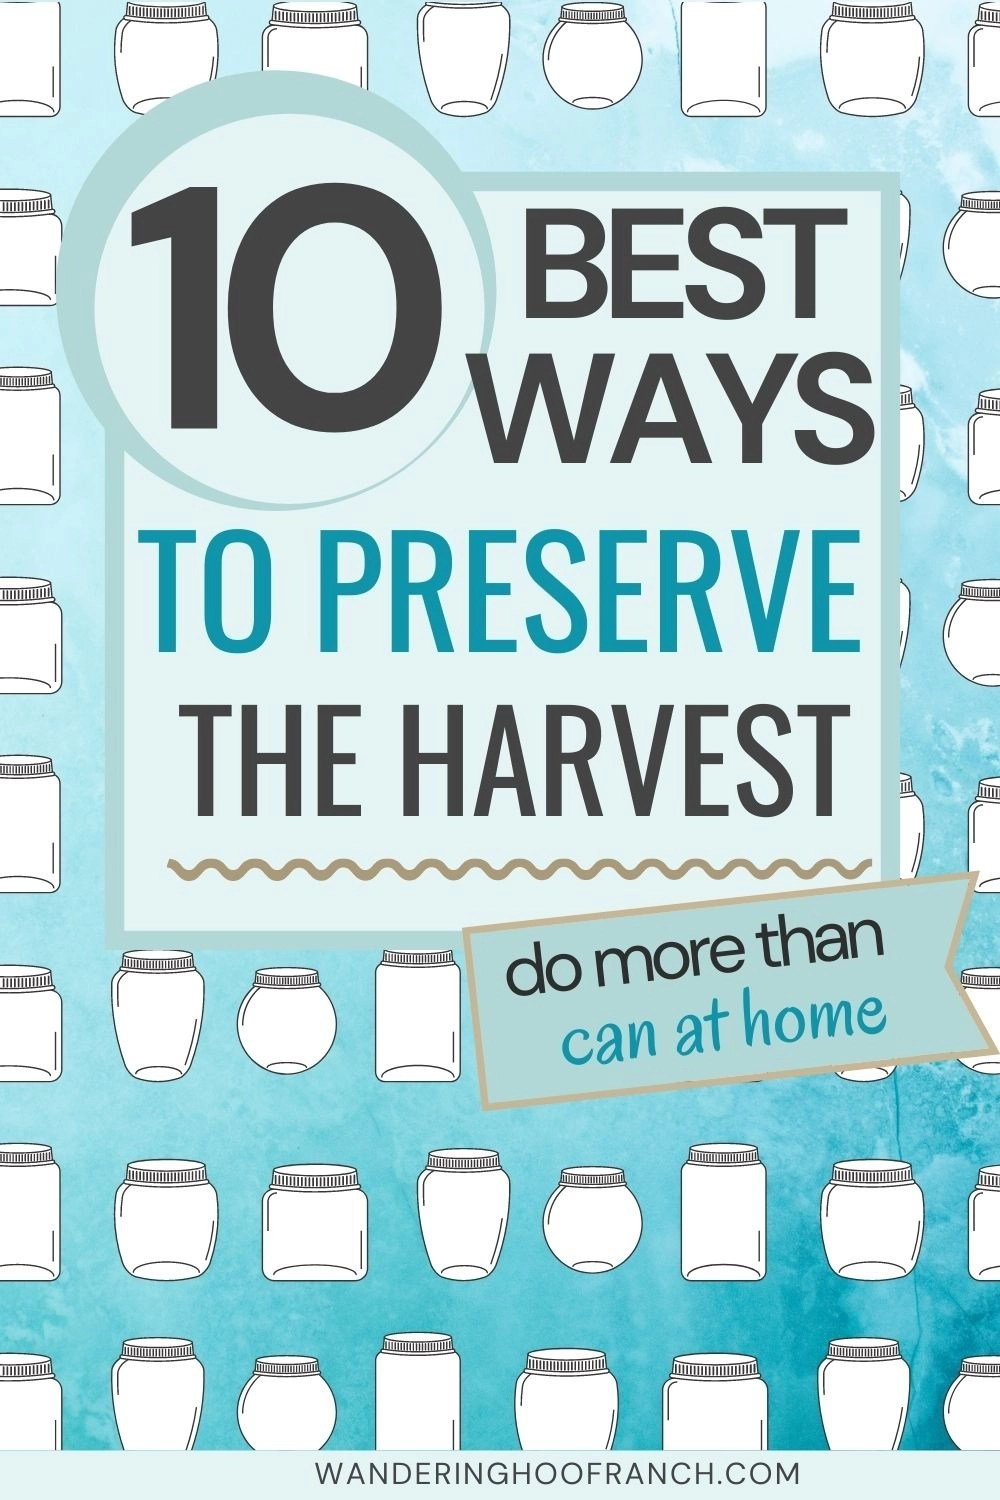 10 best ways to preserve the harvest at home, more than just canning pin image with blue backdrop and one cartoon mason jars